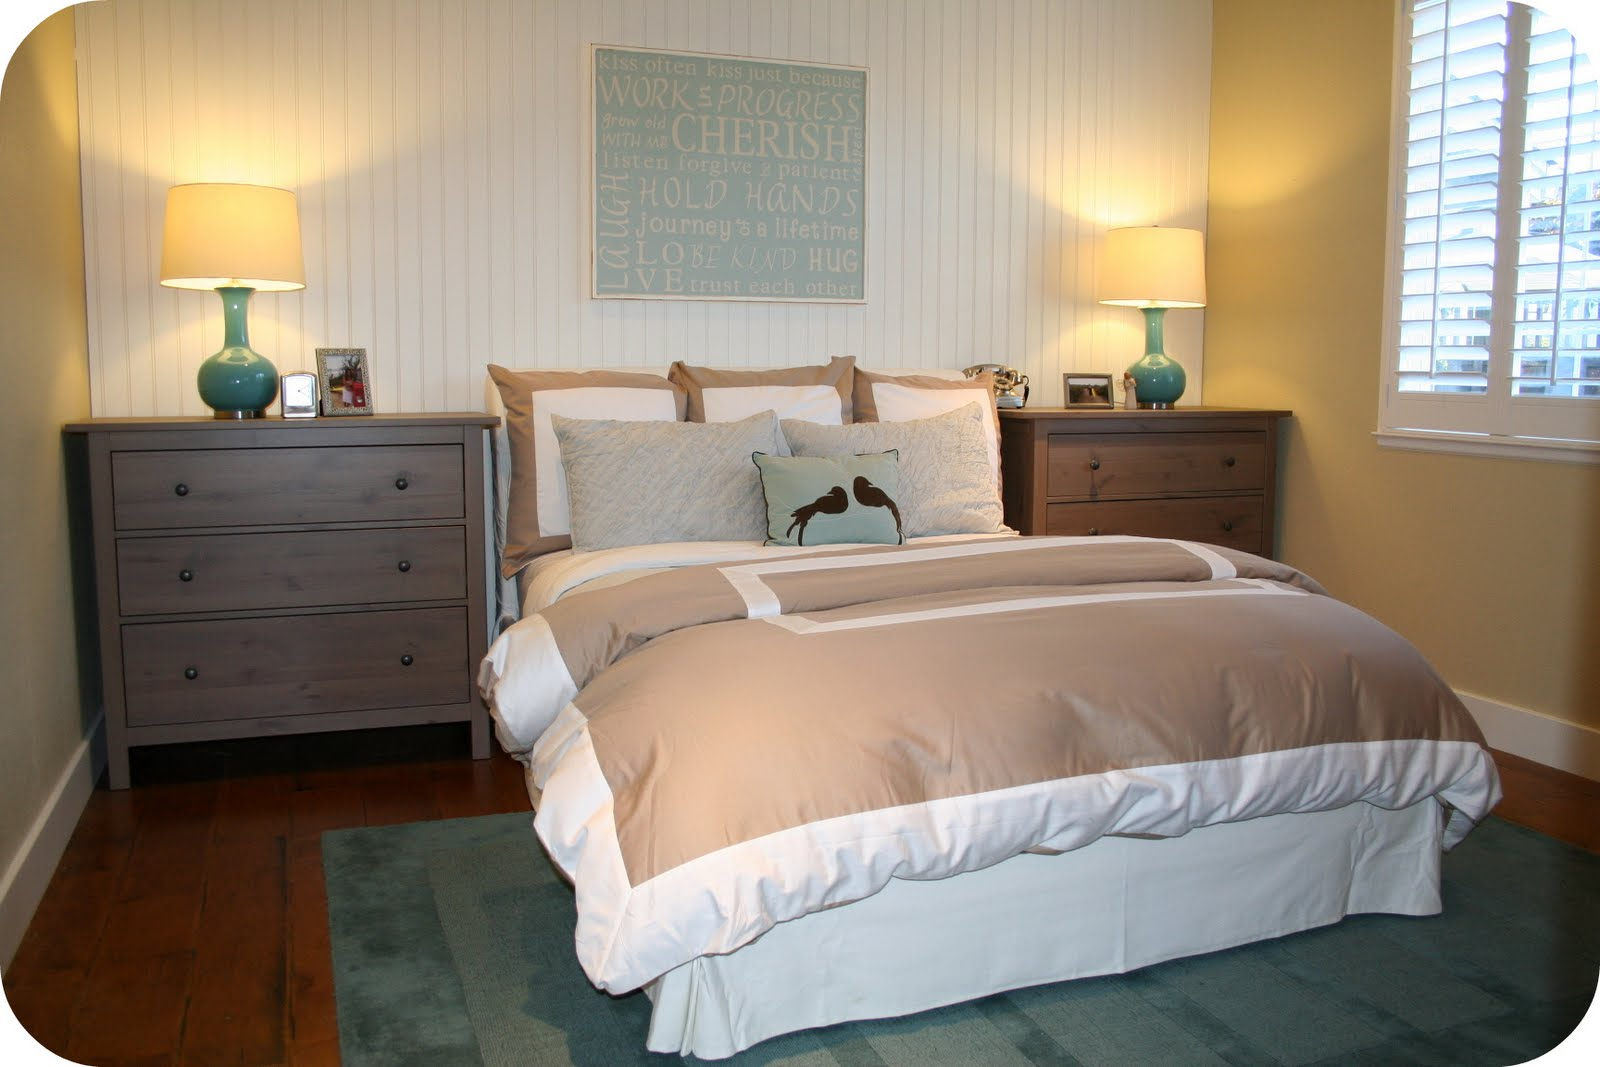 April KennedyMy Life + My Style: Small Spaces -Master Bedroom